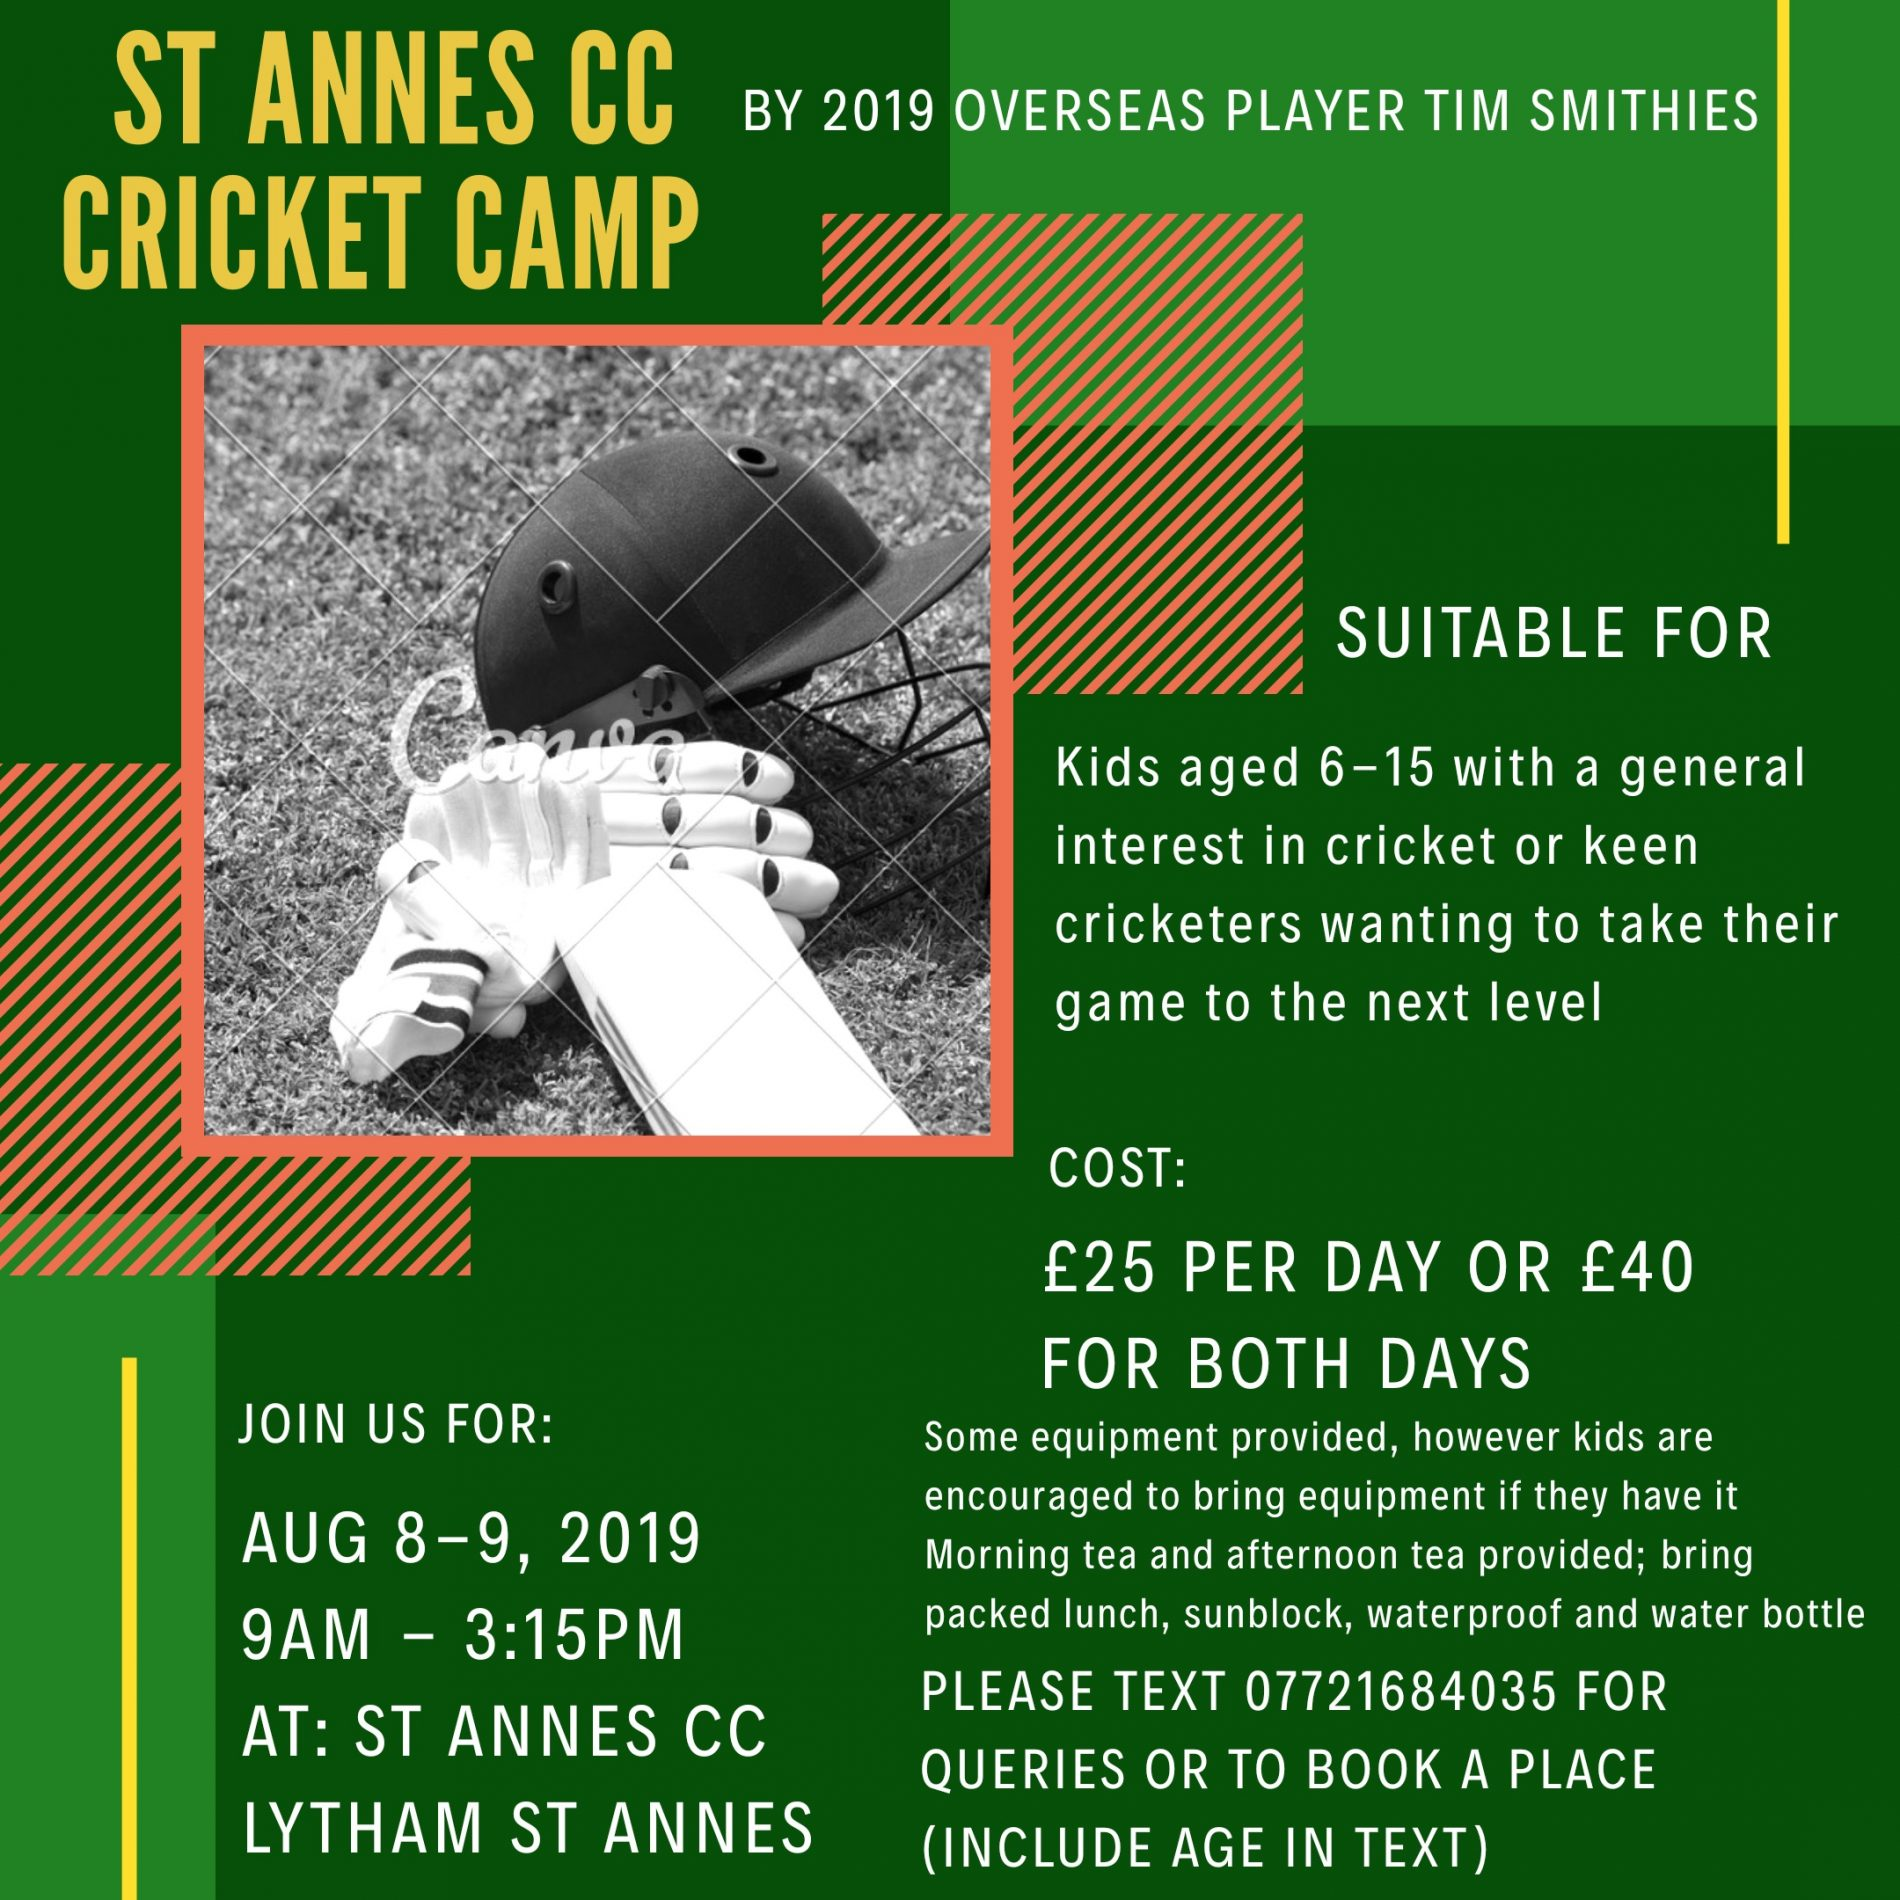 2 Day Cricket Camp with overseas player Tim Smithies 8 & 9 Aug 2019